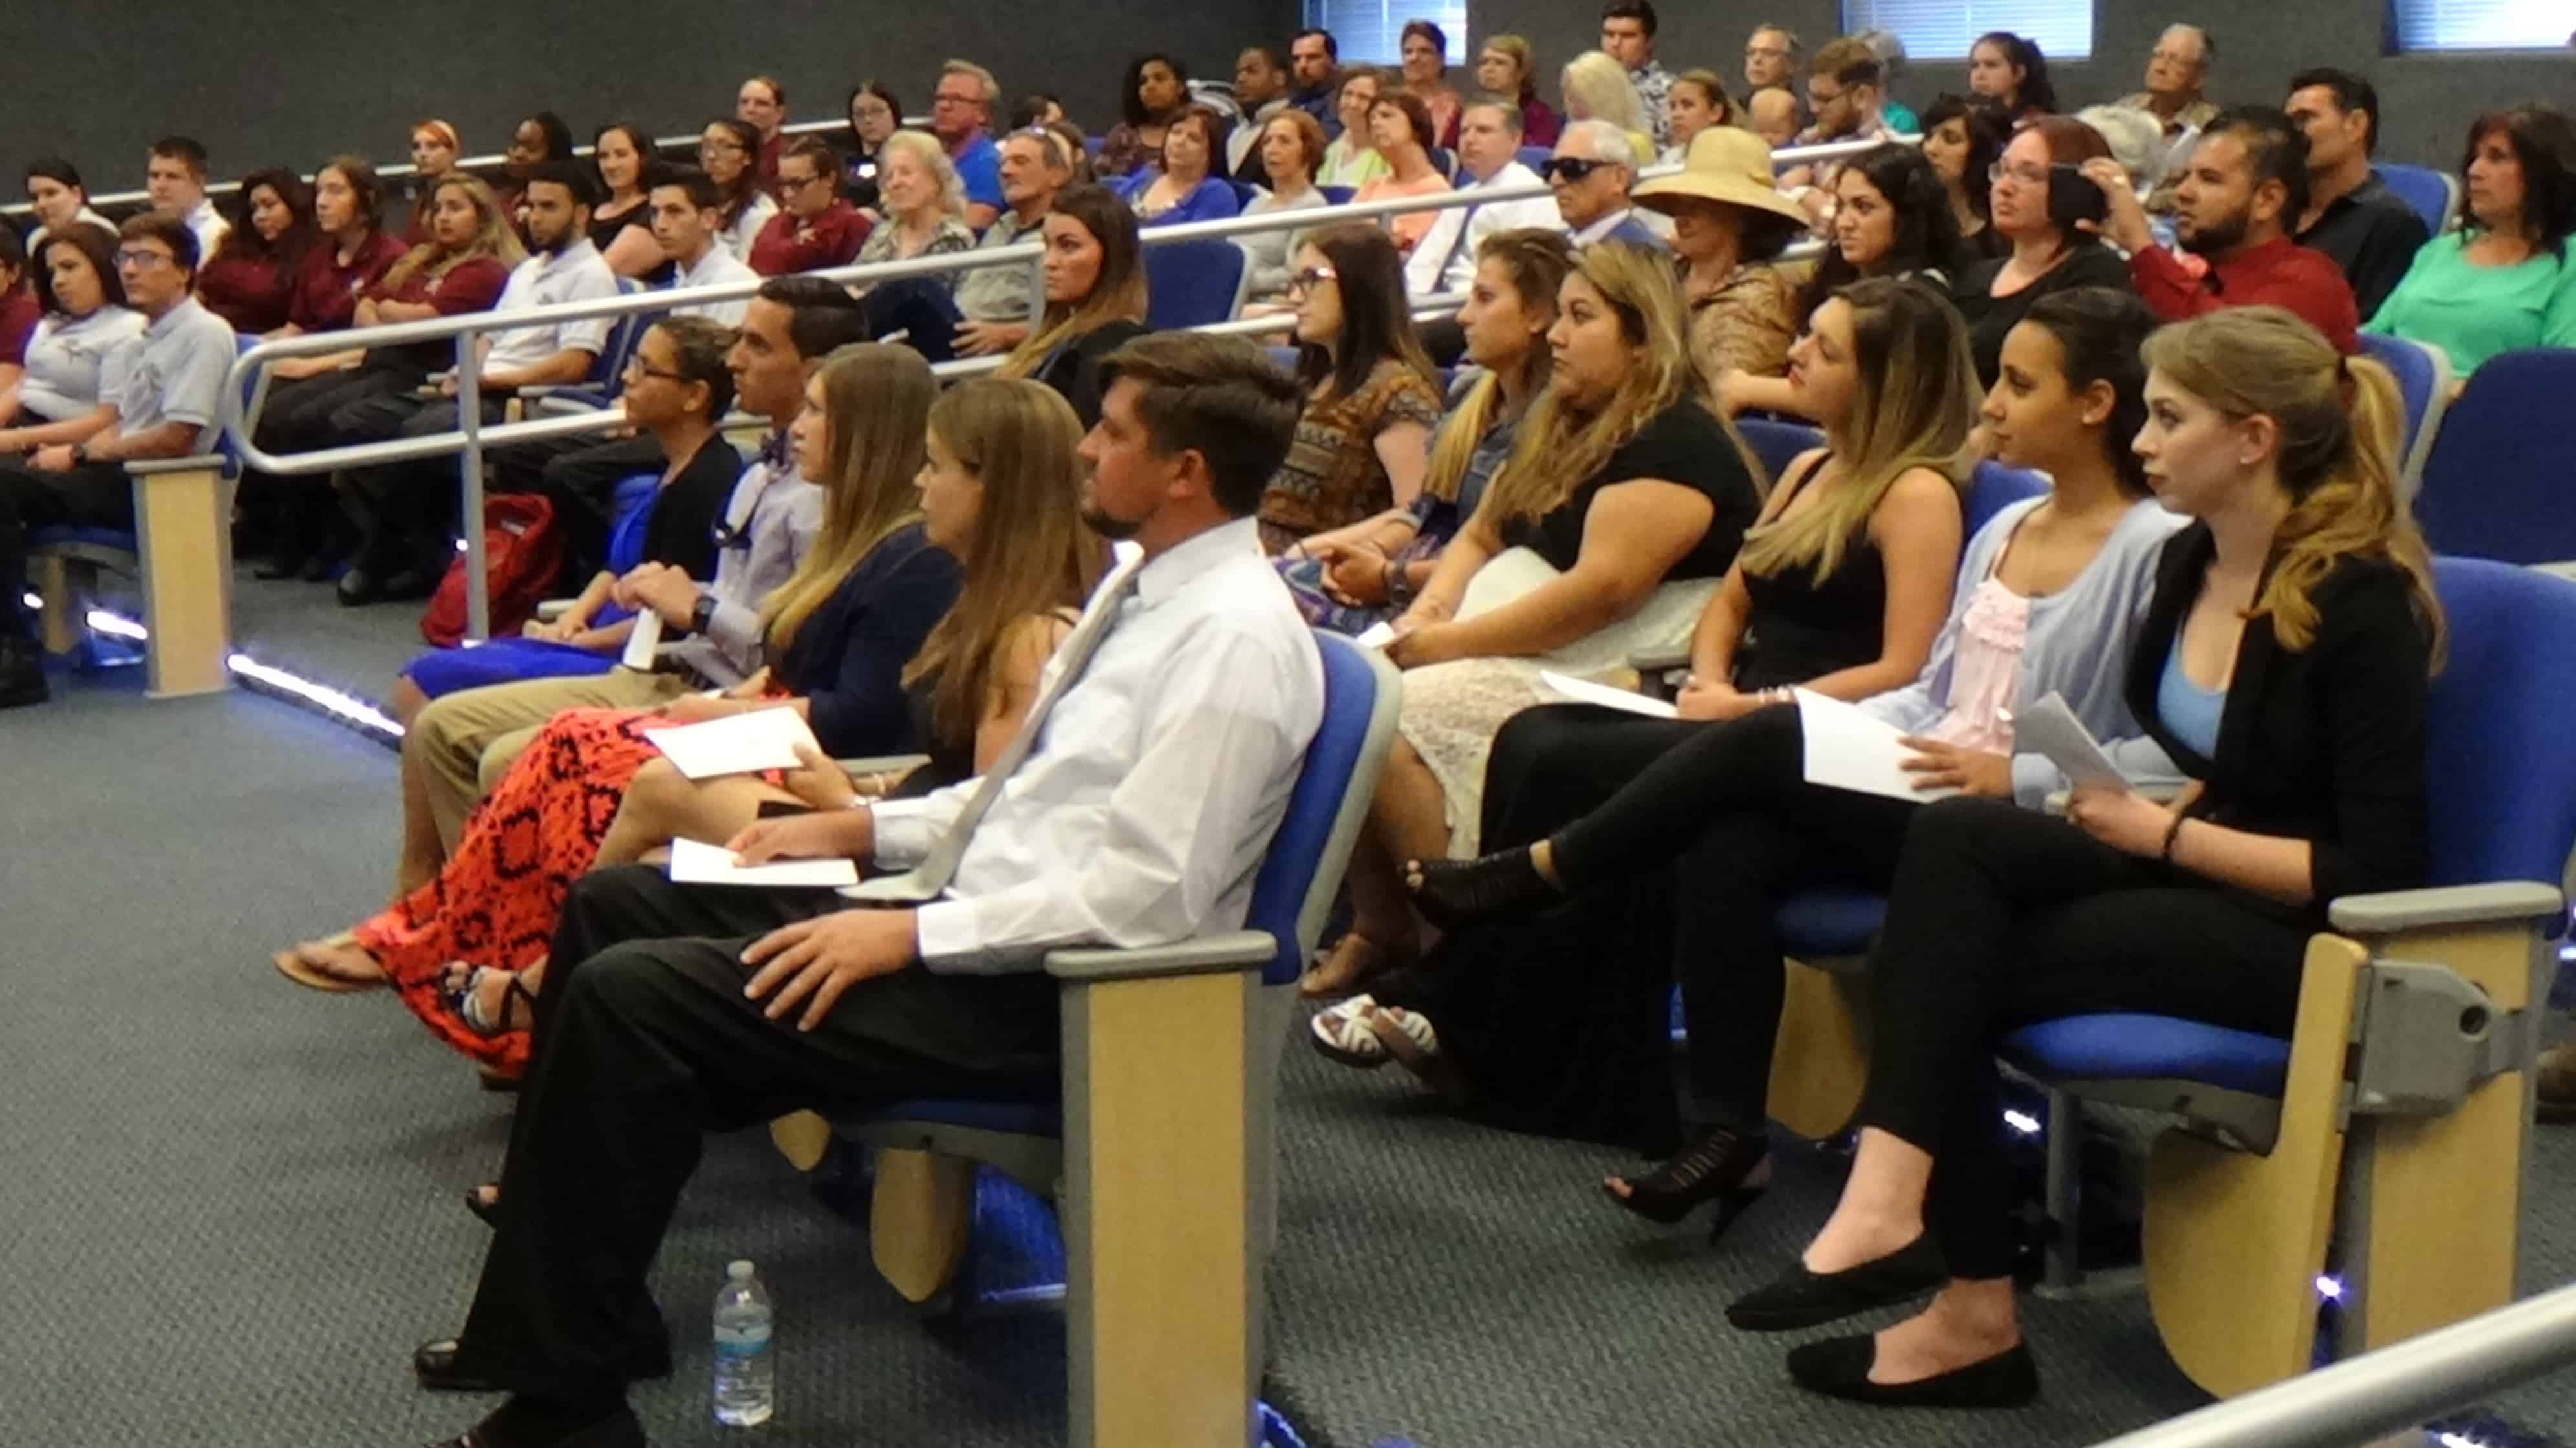 PTK Induction Ceremony Held at the Fort Myers Campus